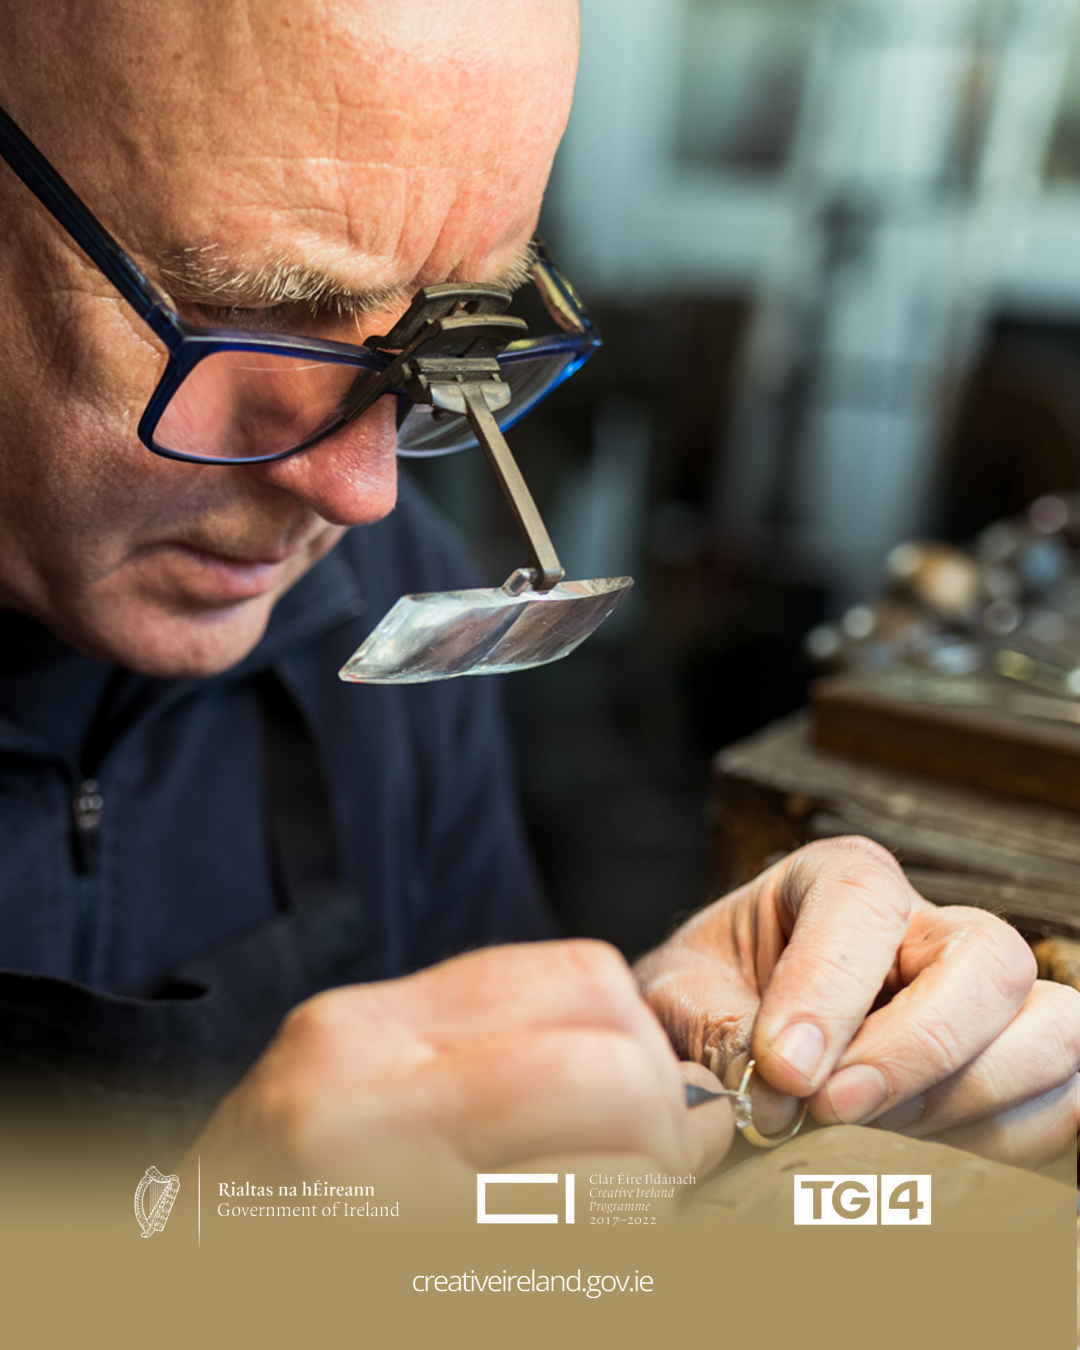 James Kelly, owner of JMK Goldsmiths working at his goldsmith's bench in Kilkenny, Ireland